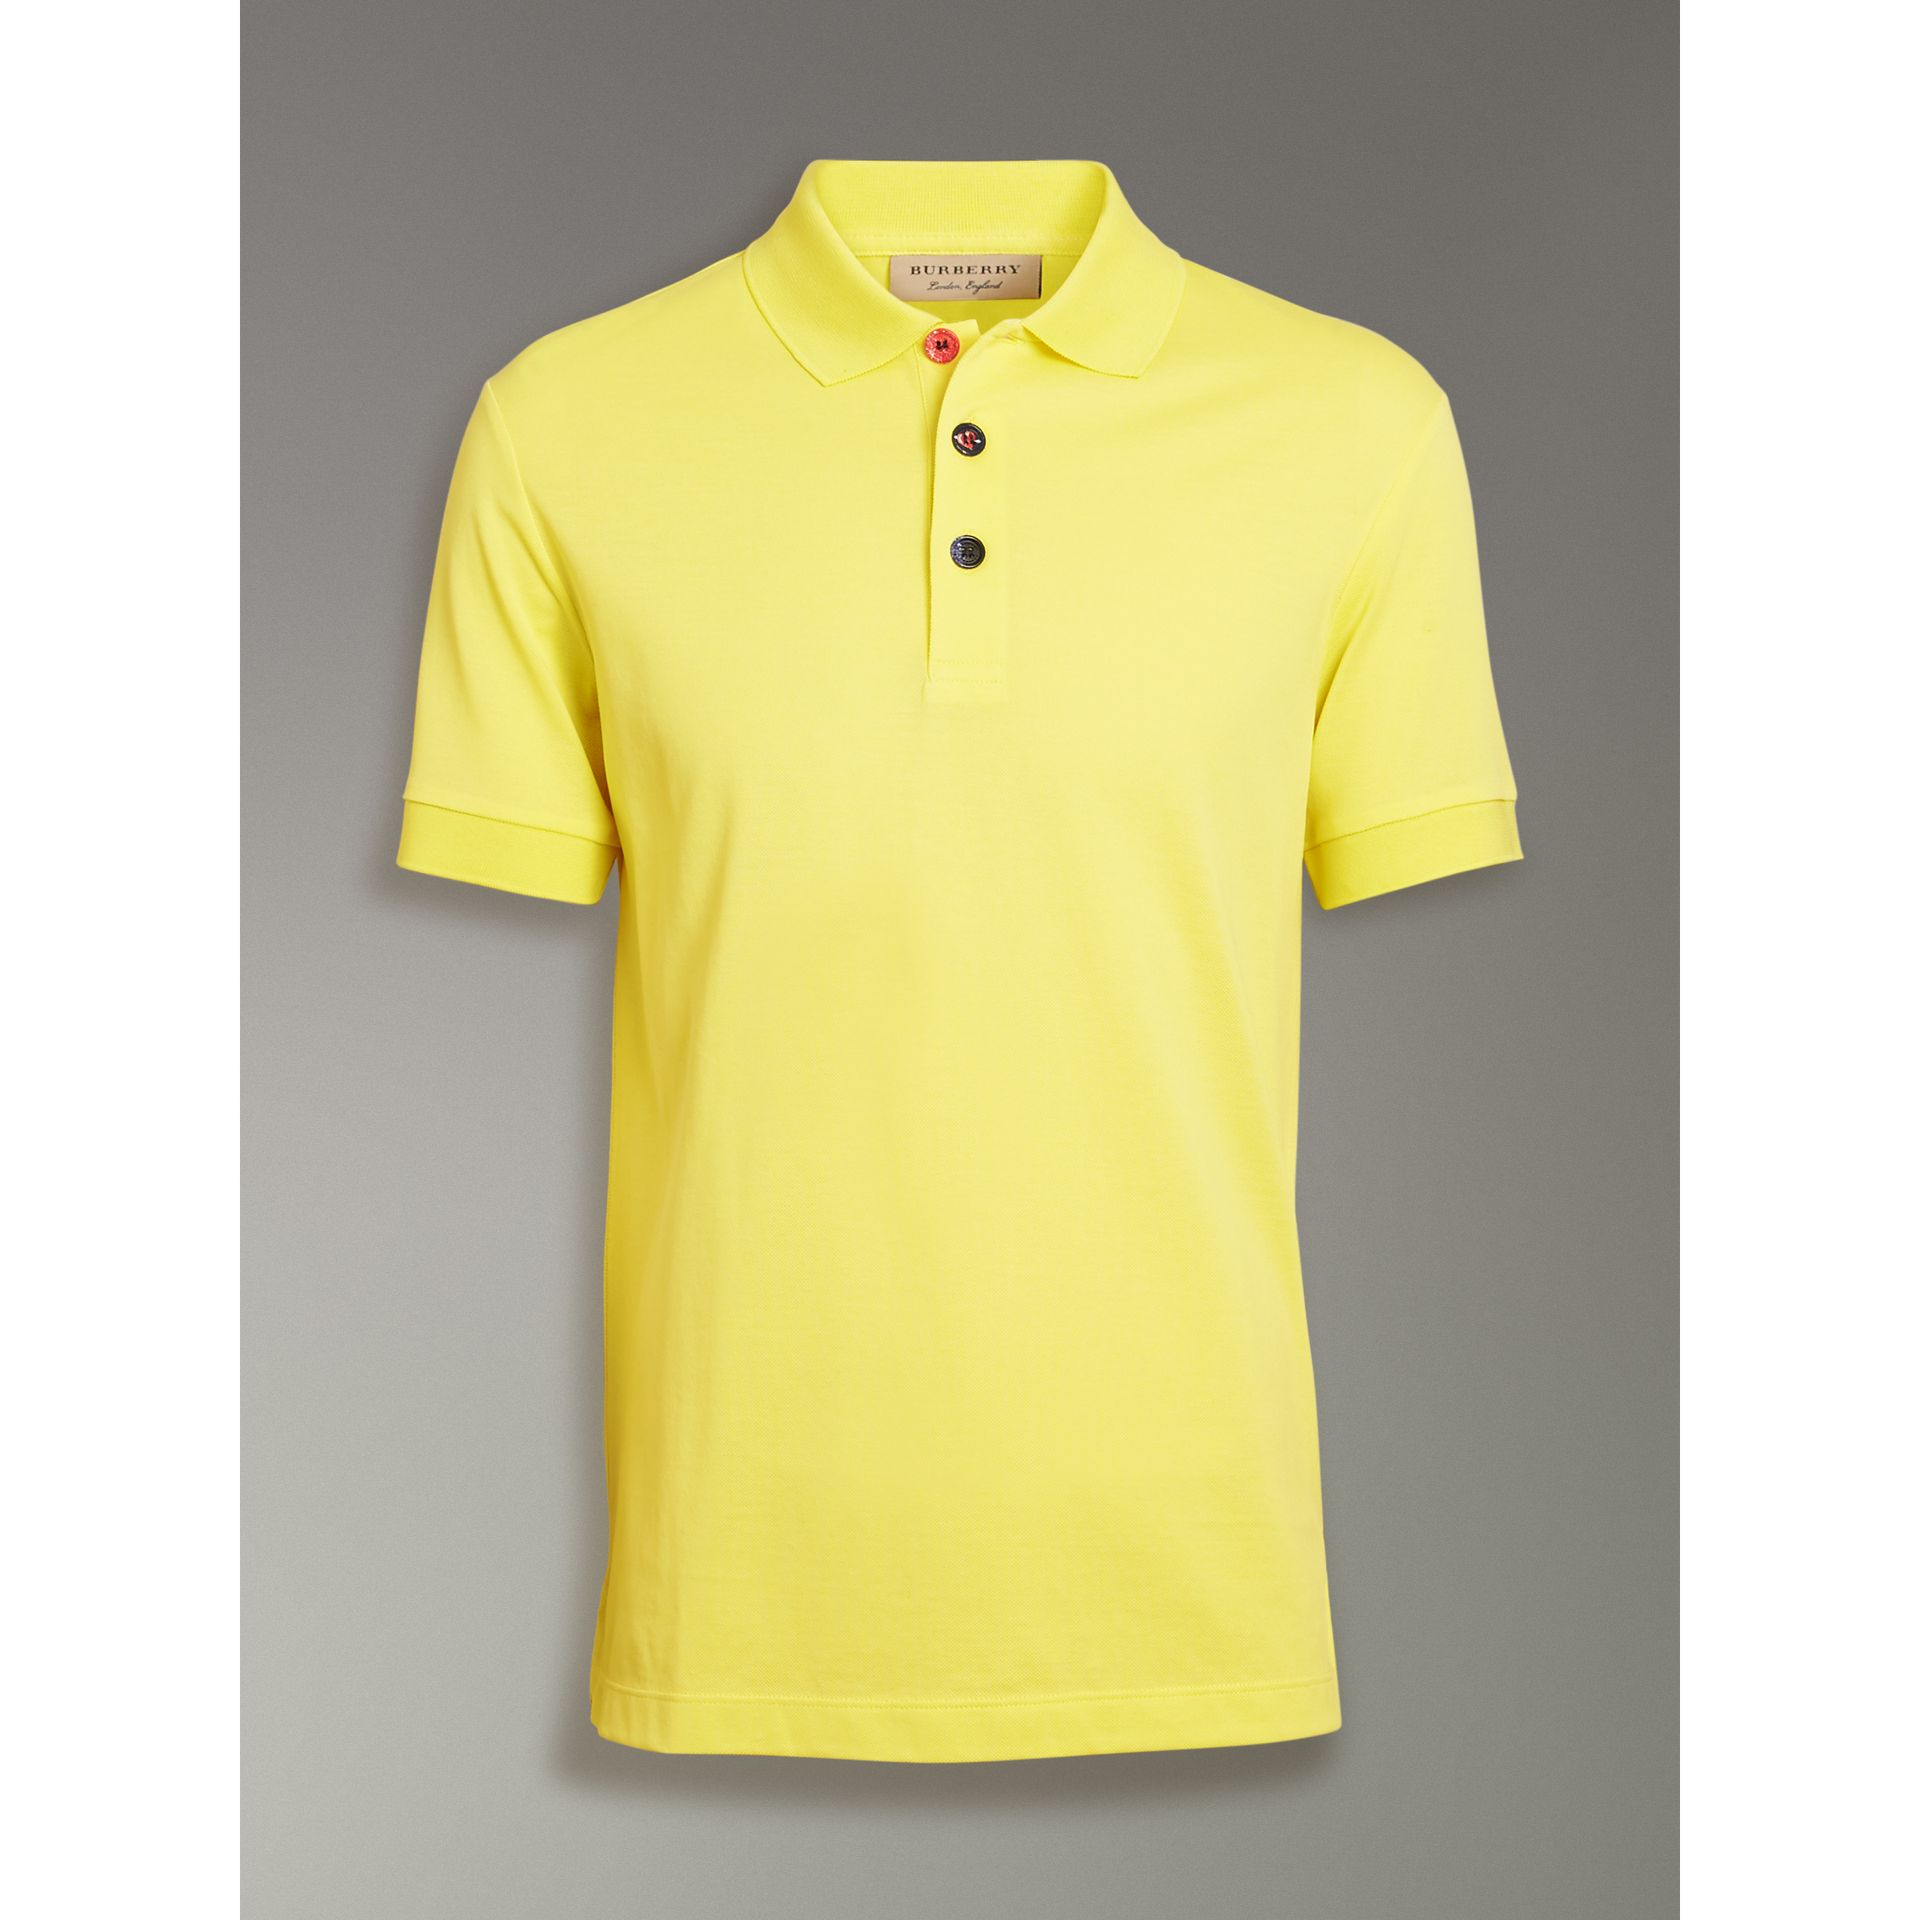 Painted Button Cotton Piqué Polo Shirt in Vibrant Lemon - Men | Burberry - gallery image 3